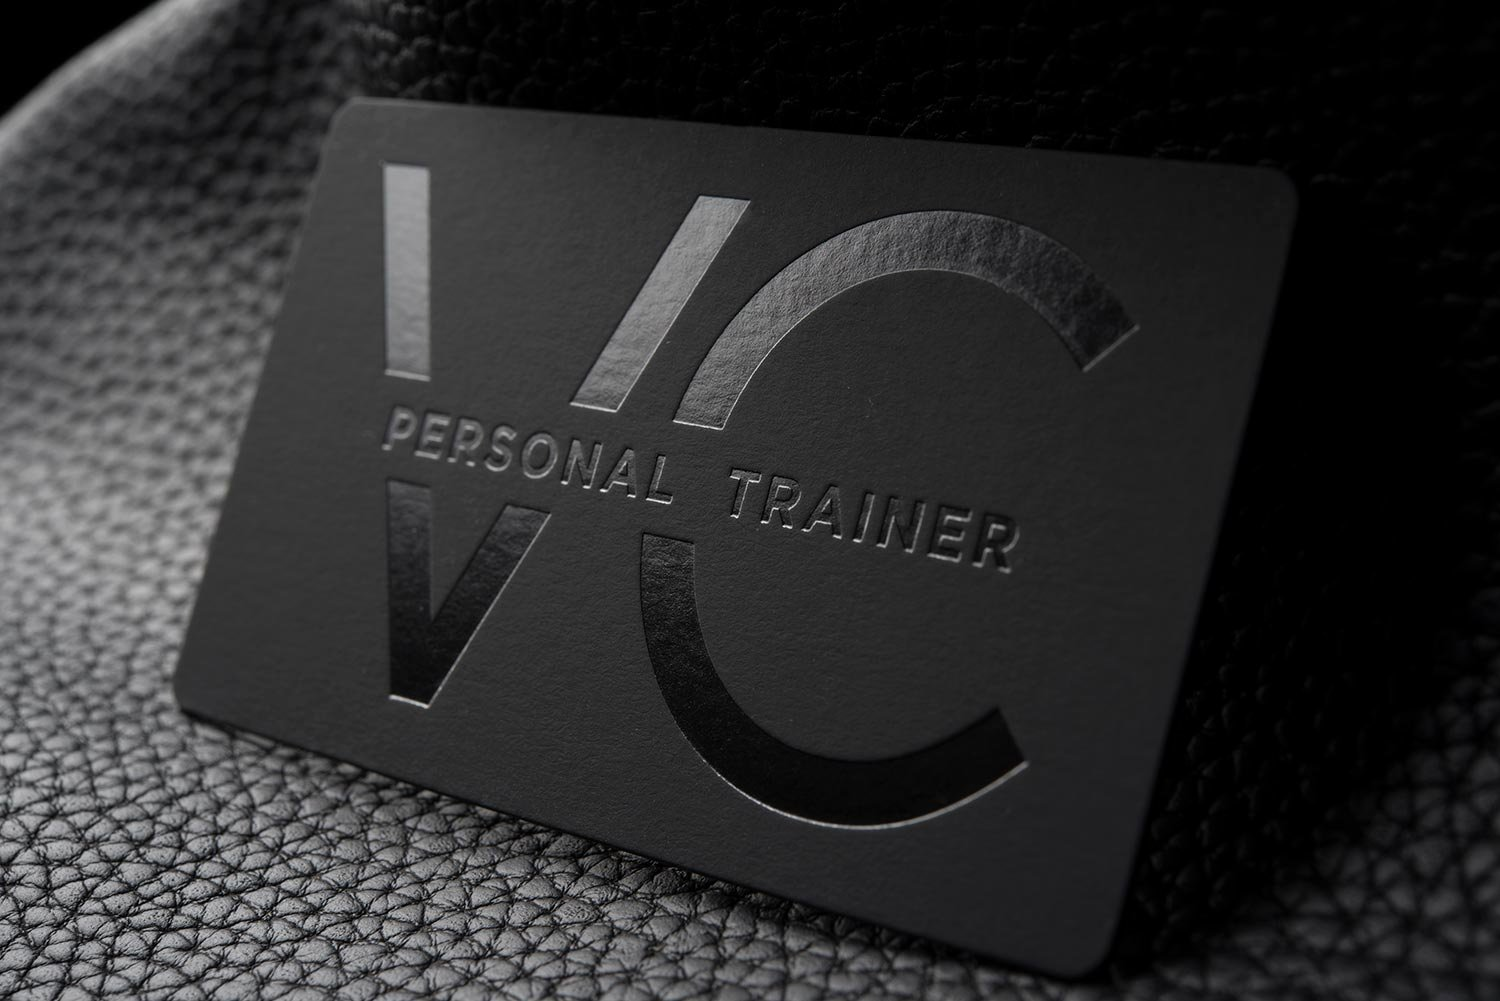 Personal Trainers Business Cards Luxury Free Impressive Hard Suede Personal Trainer Business Card Template Vc